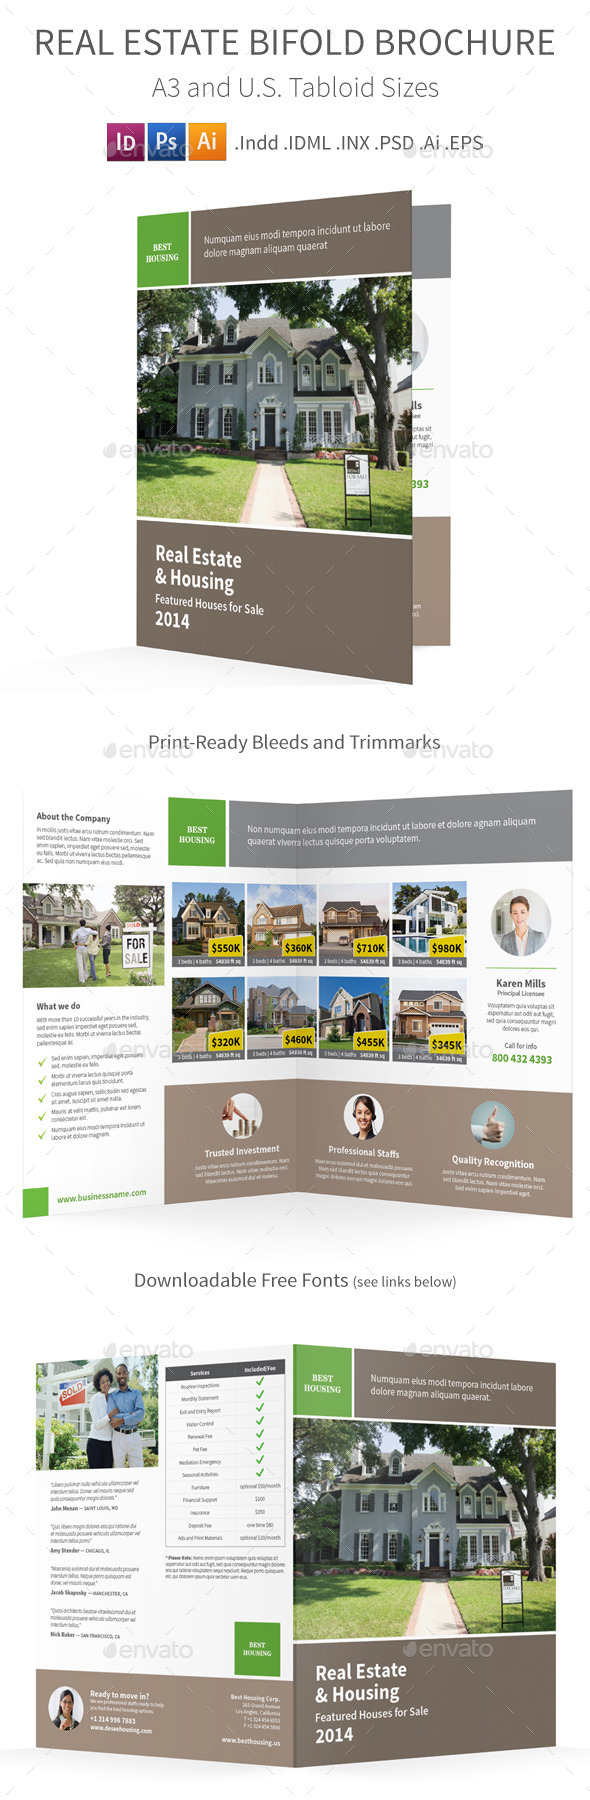 GraphicRiver Real Estate Bifold Halffold Brochure 8975288